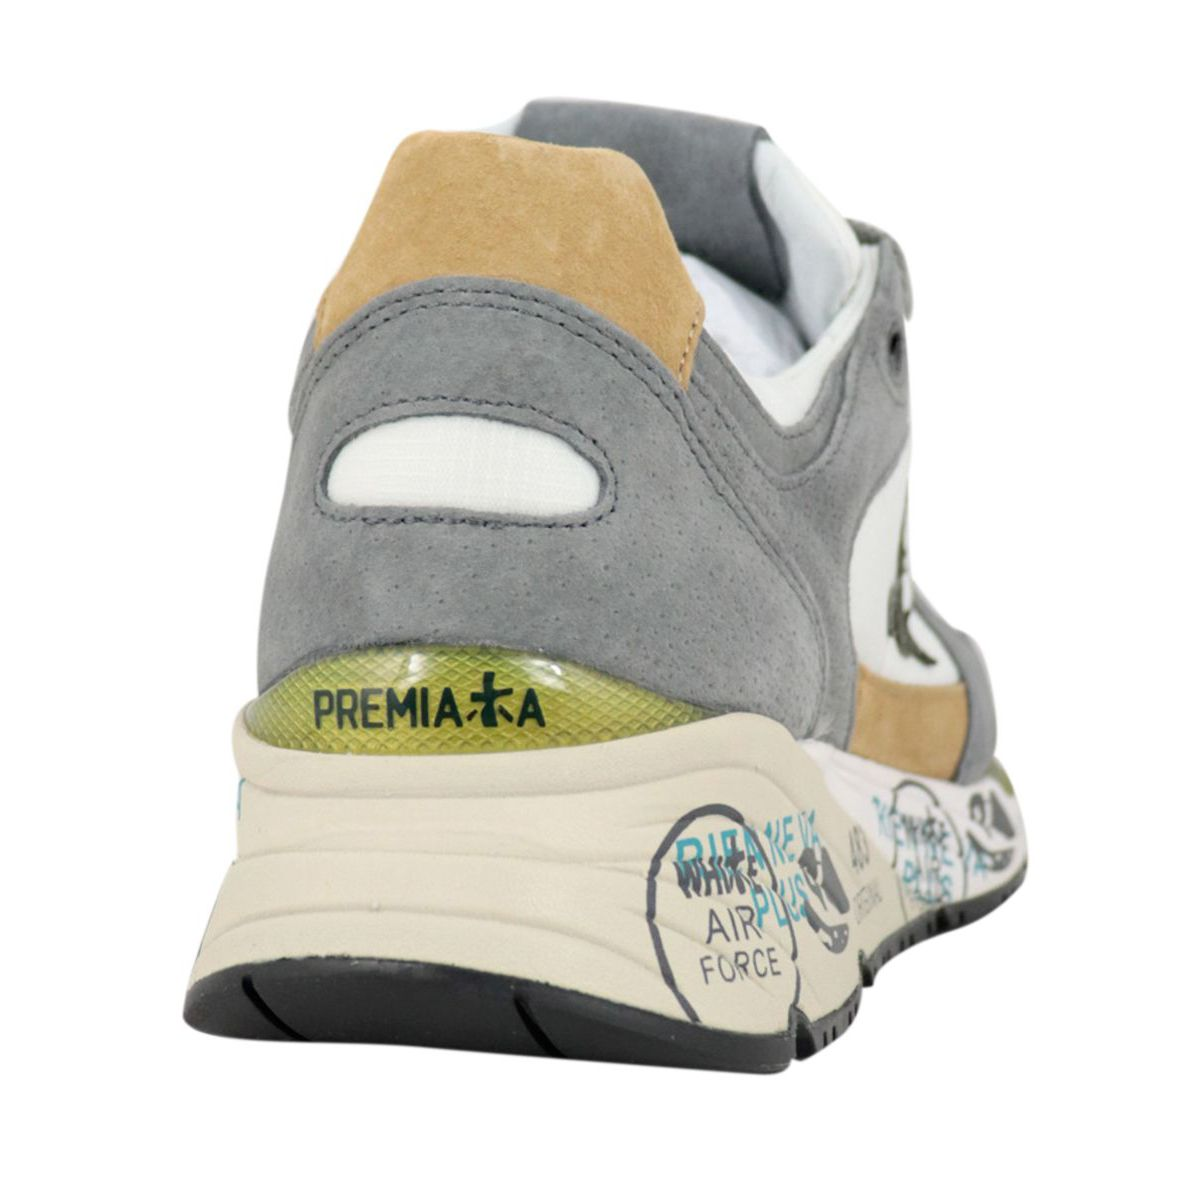 Mase sneakers in suede with prints Ice Premiata